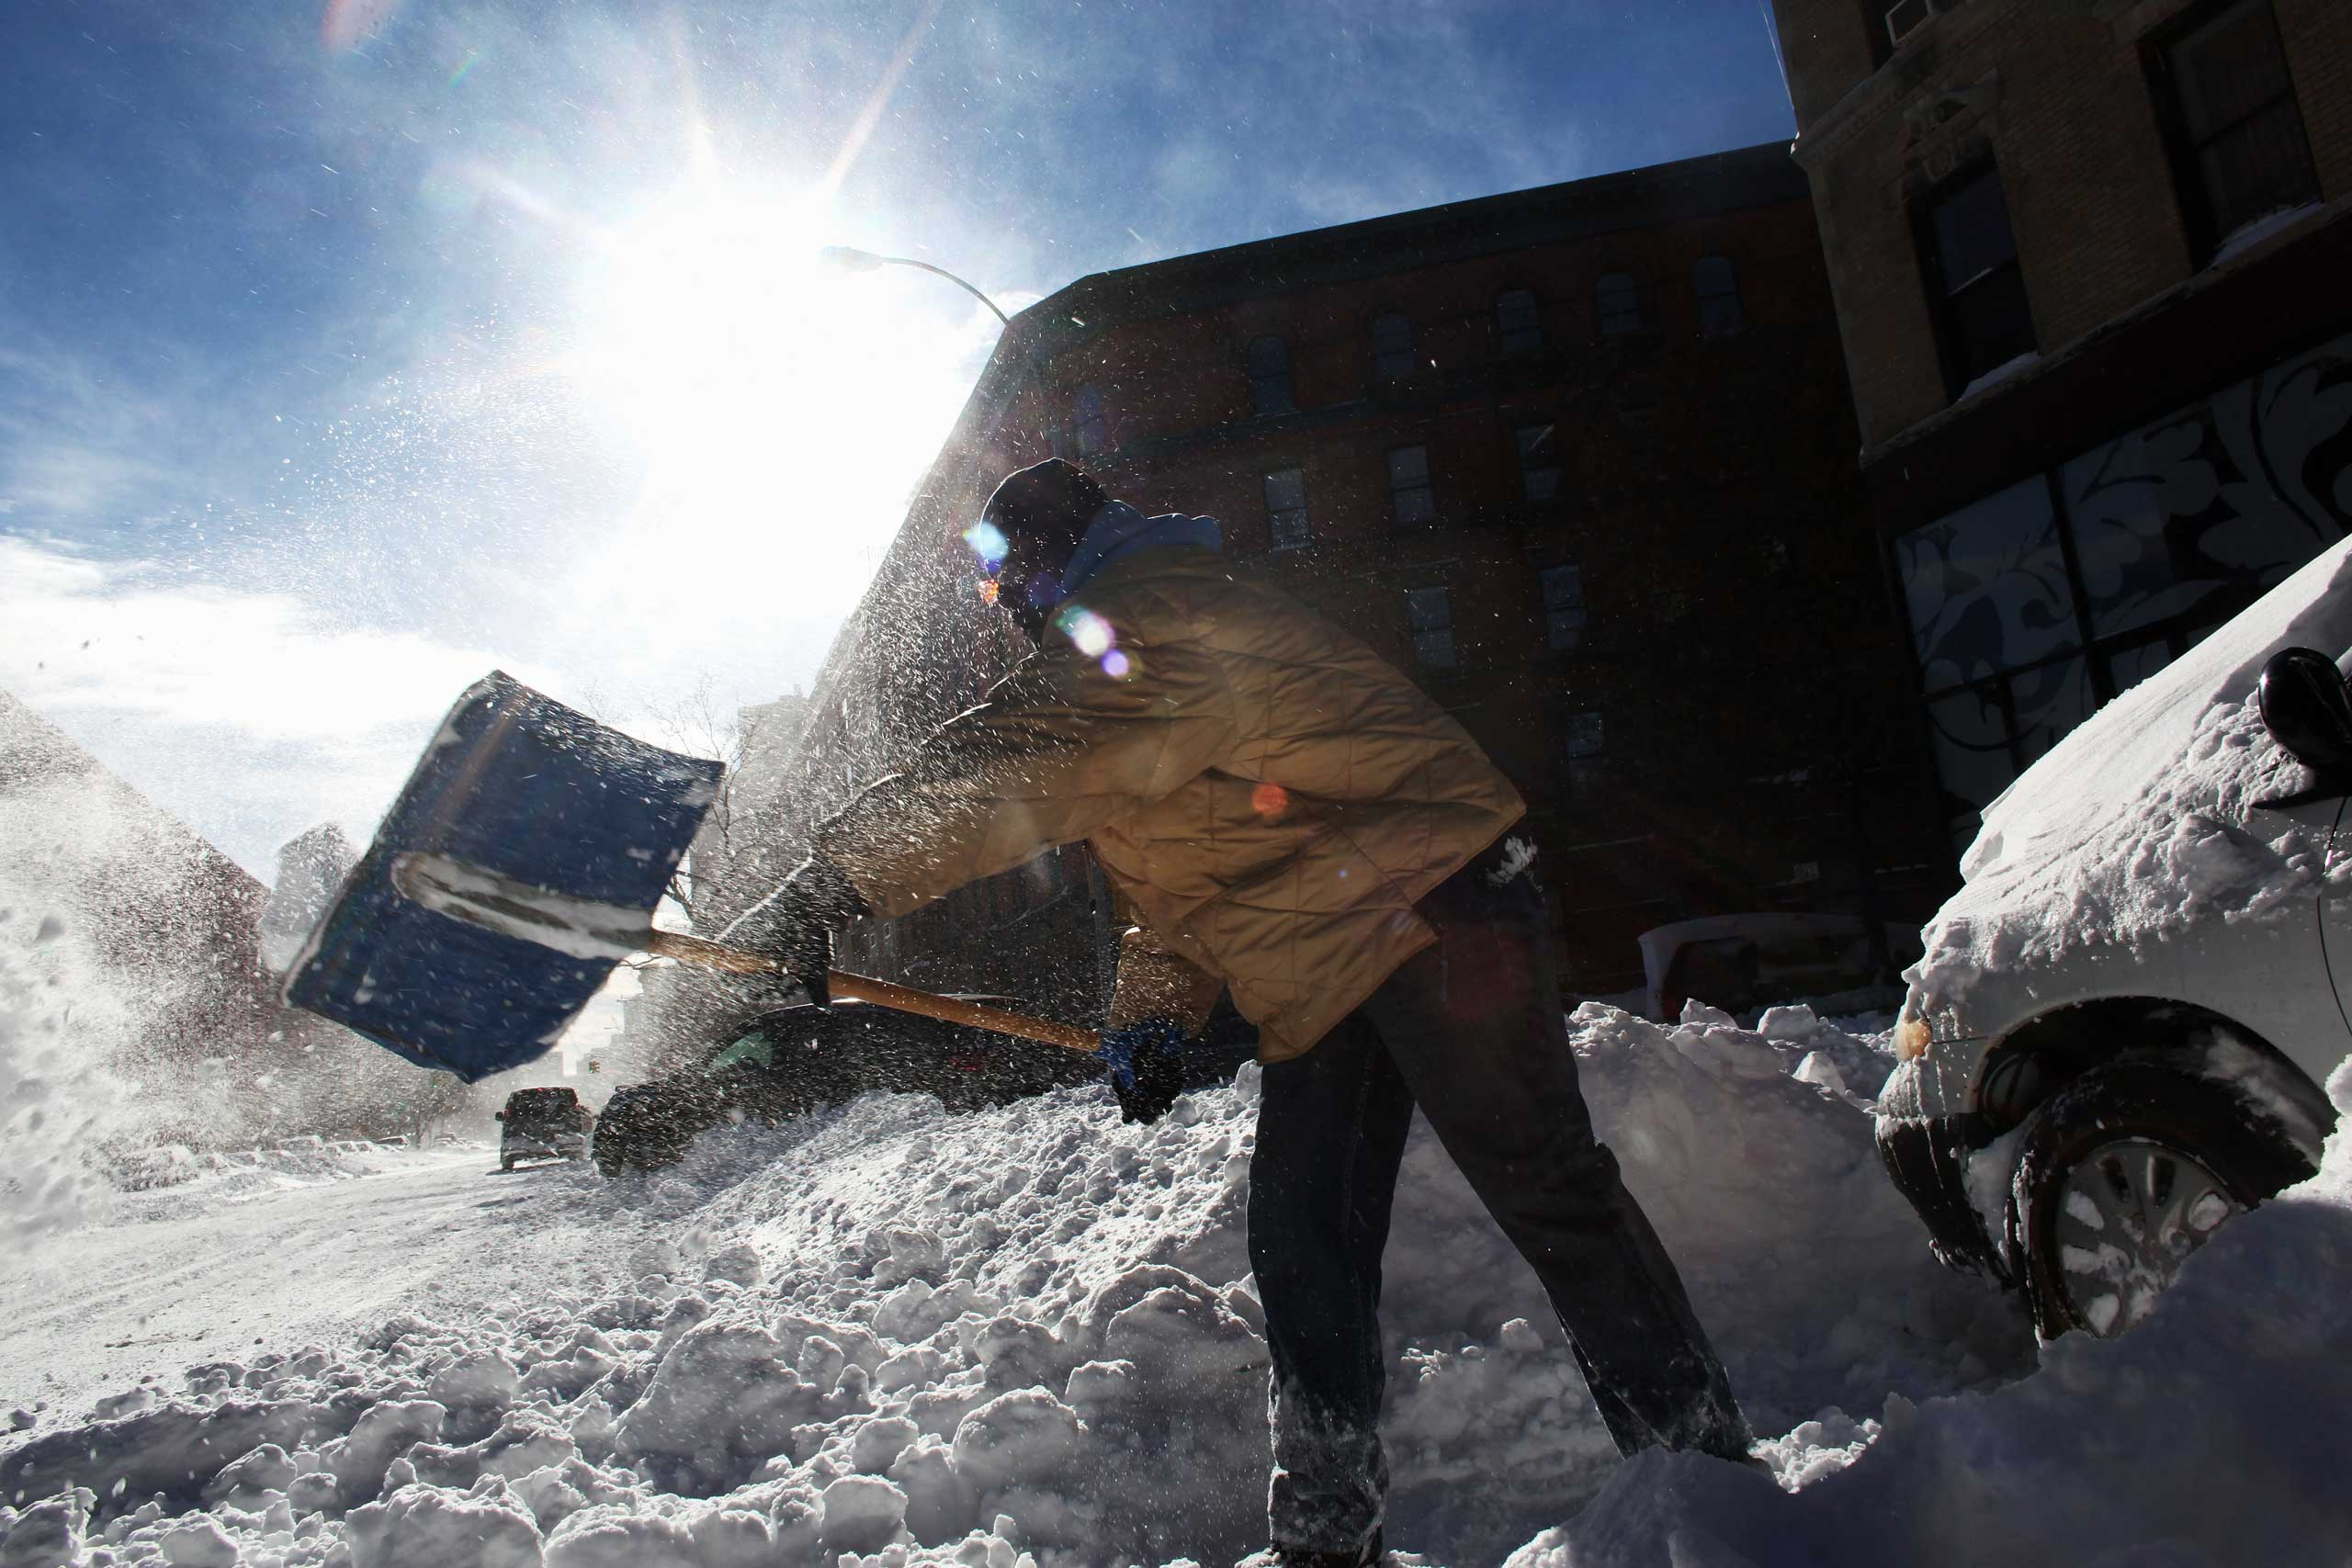 <b>The Post-Christmas Storm of 2010 (Dec. 25-28, 2010)</b> New York City received over 20 inches of snowfall. Here, a man digs out his car in the Harlem neighborhood of New York City on Dec. 27, 2010.